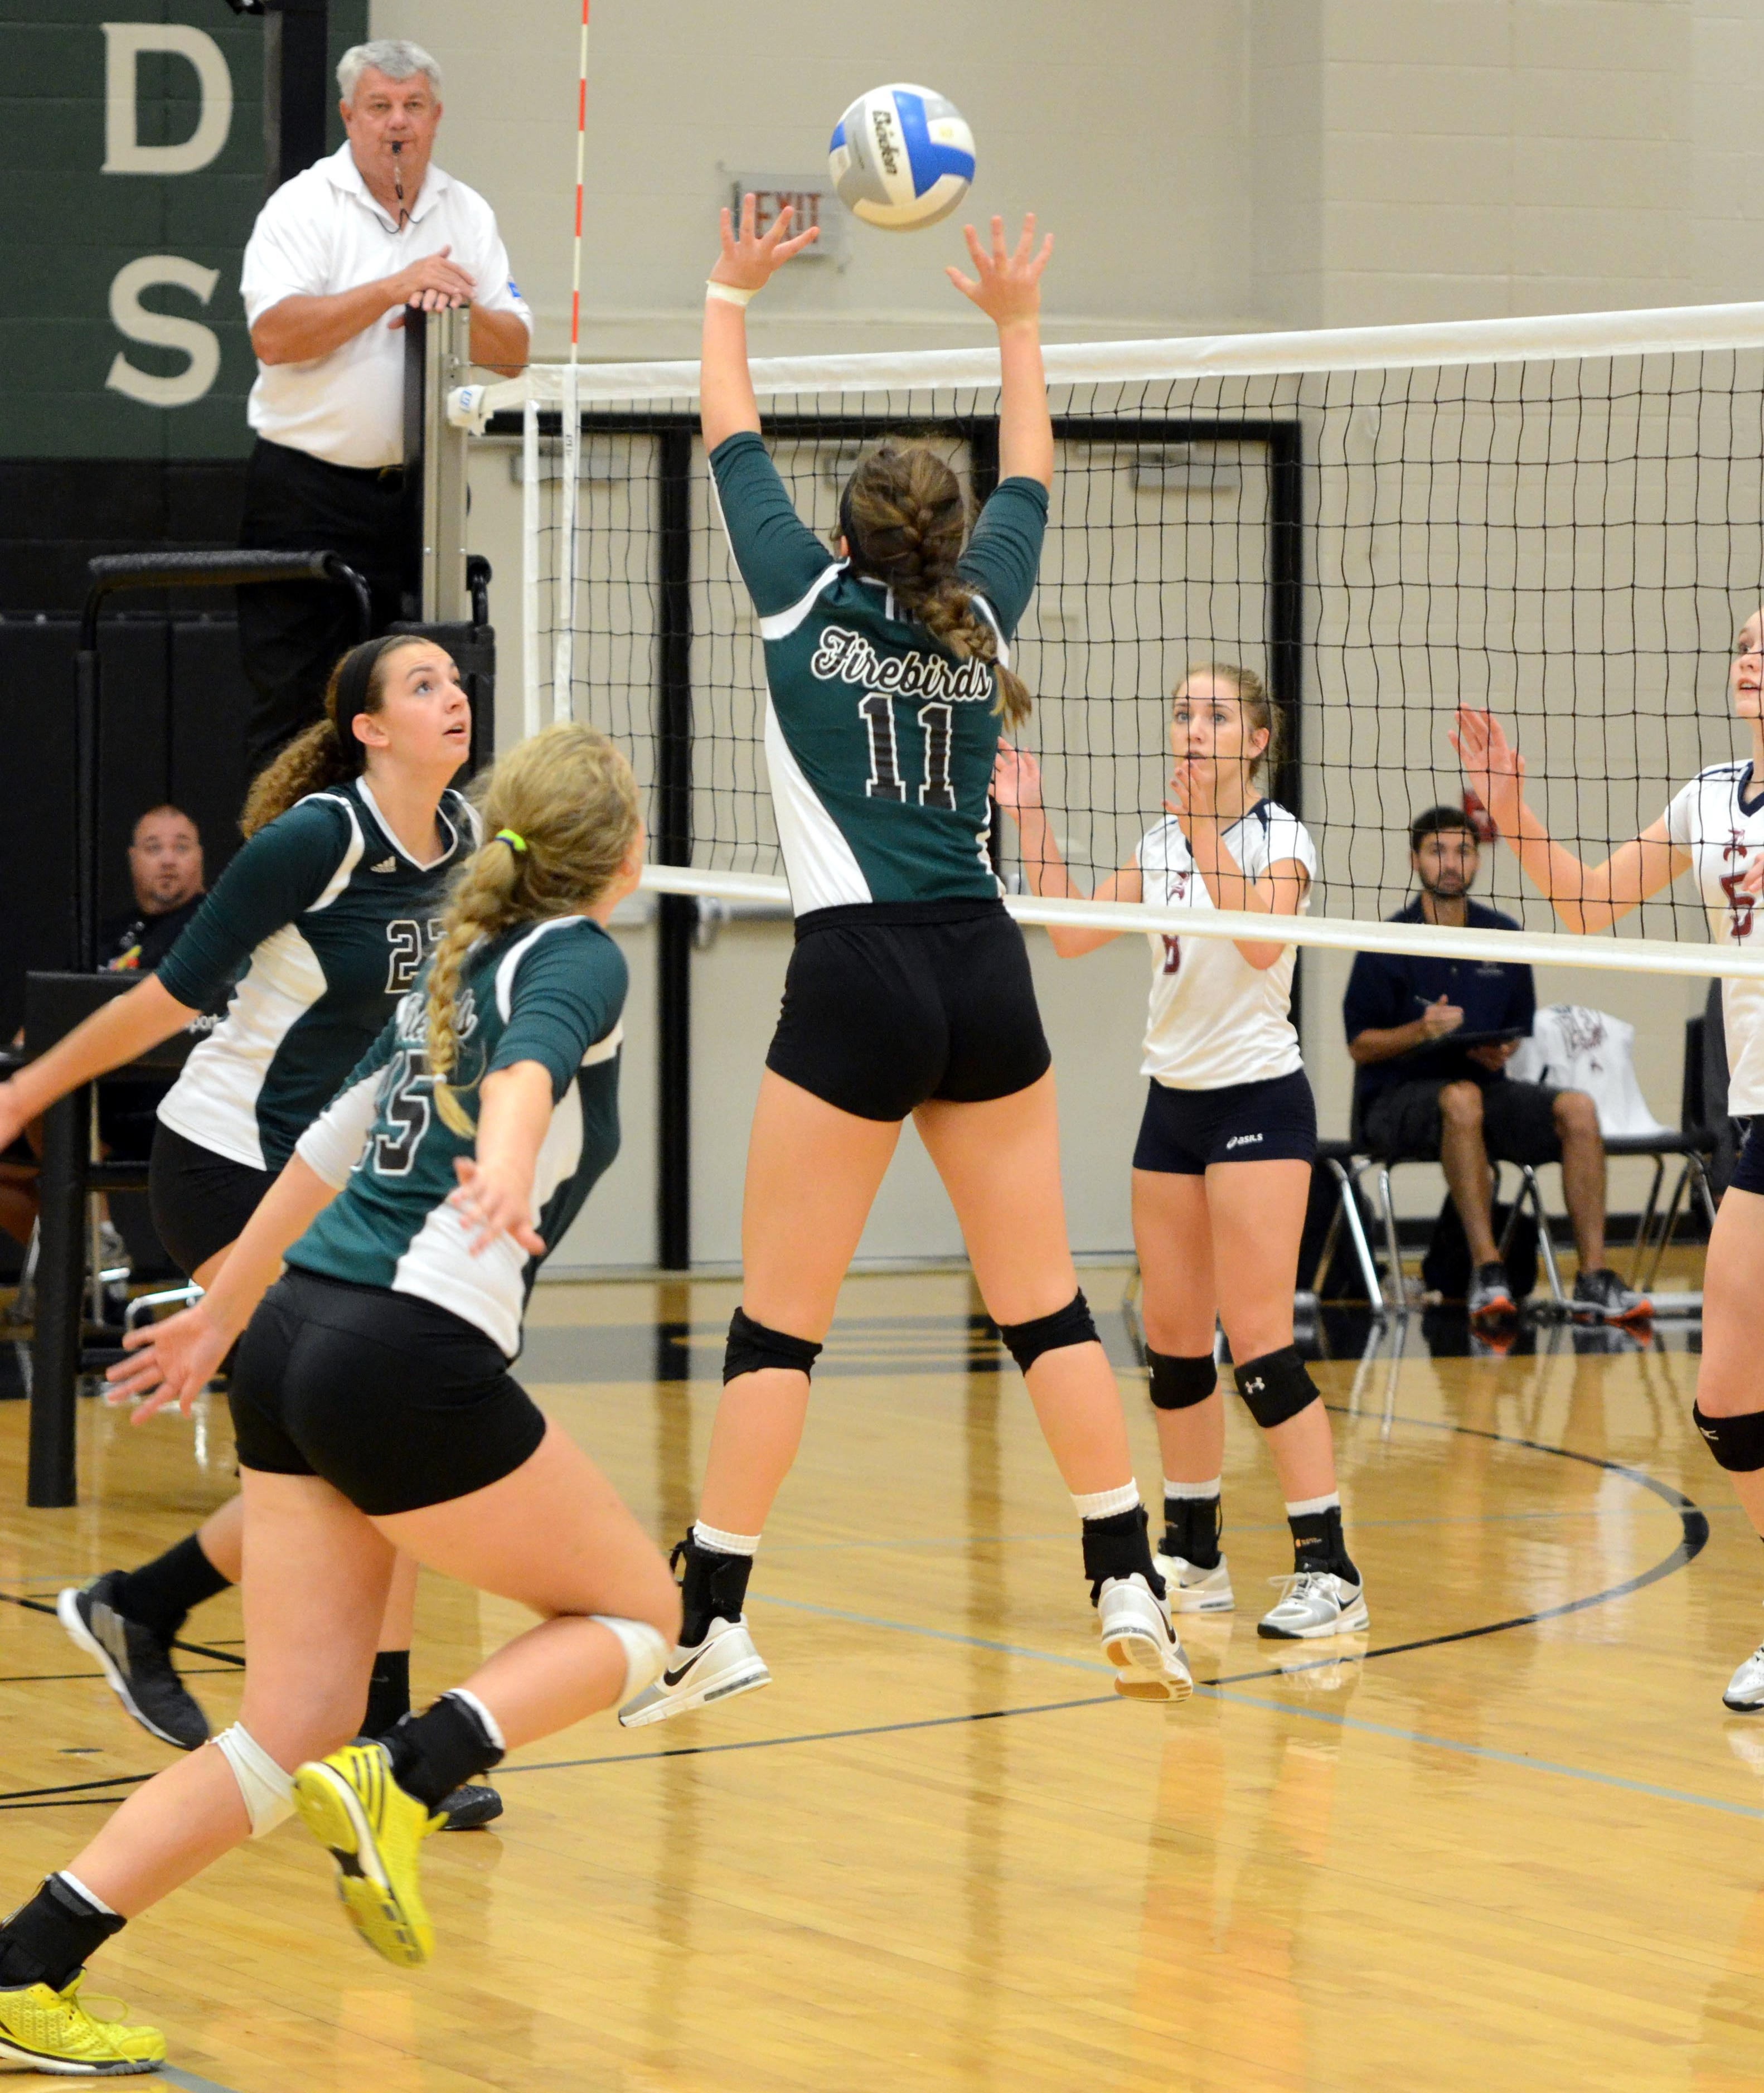 VOLLEYBALL SEASON OPENER IS ONE YOU DON'T WANT TO MISS!